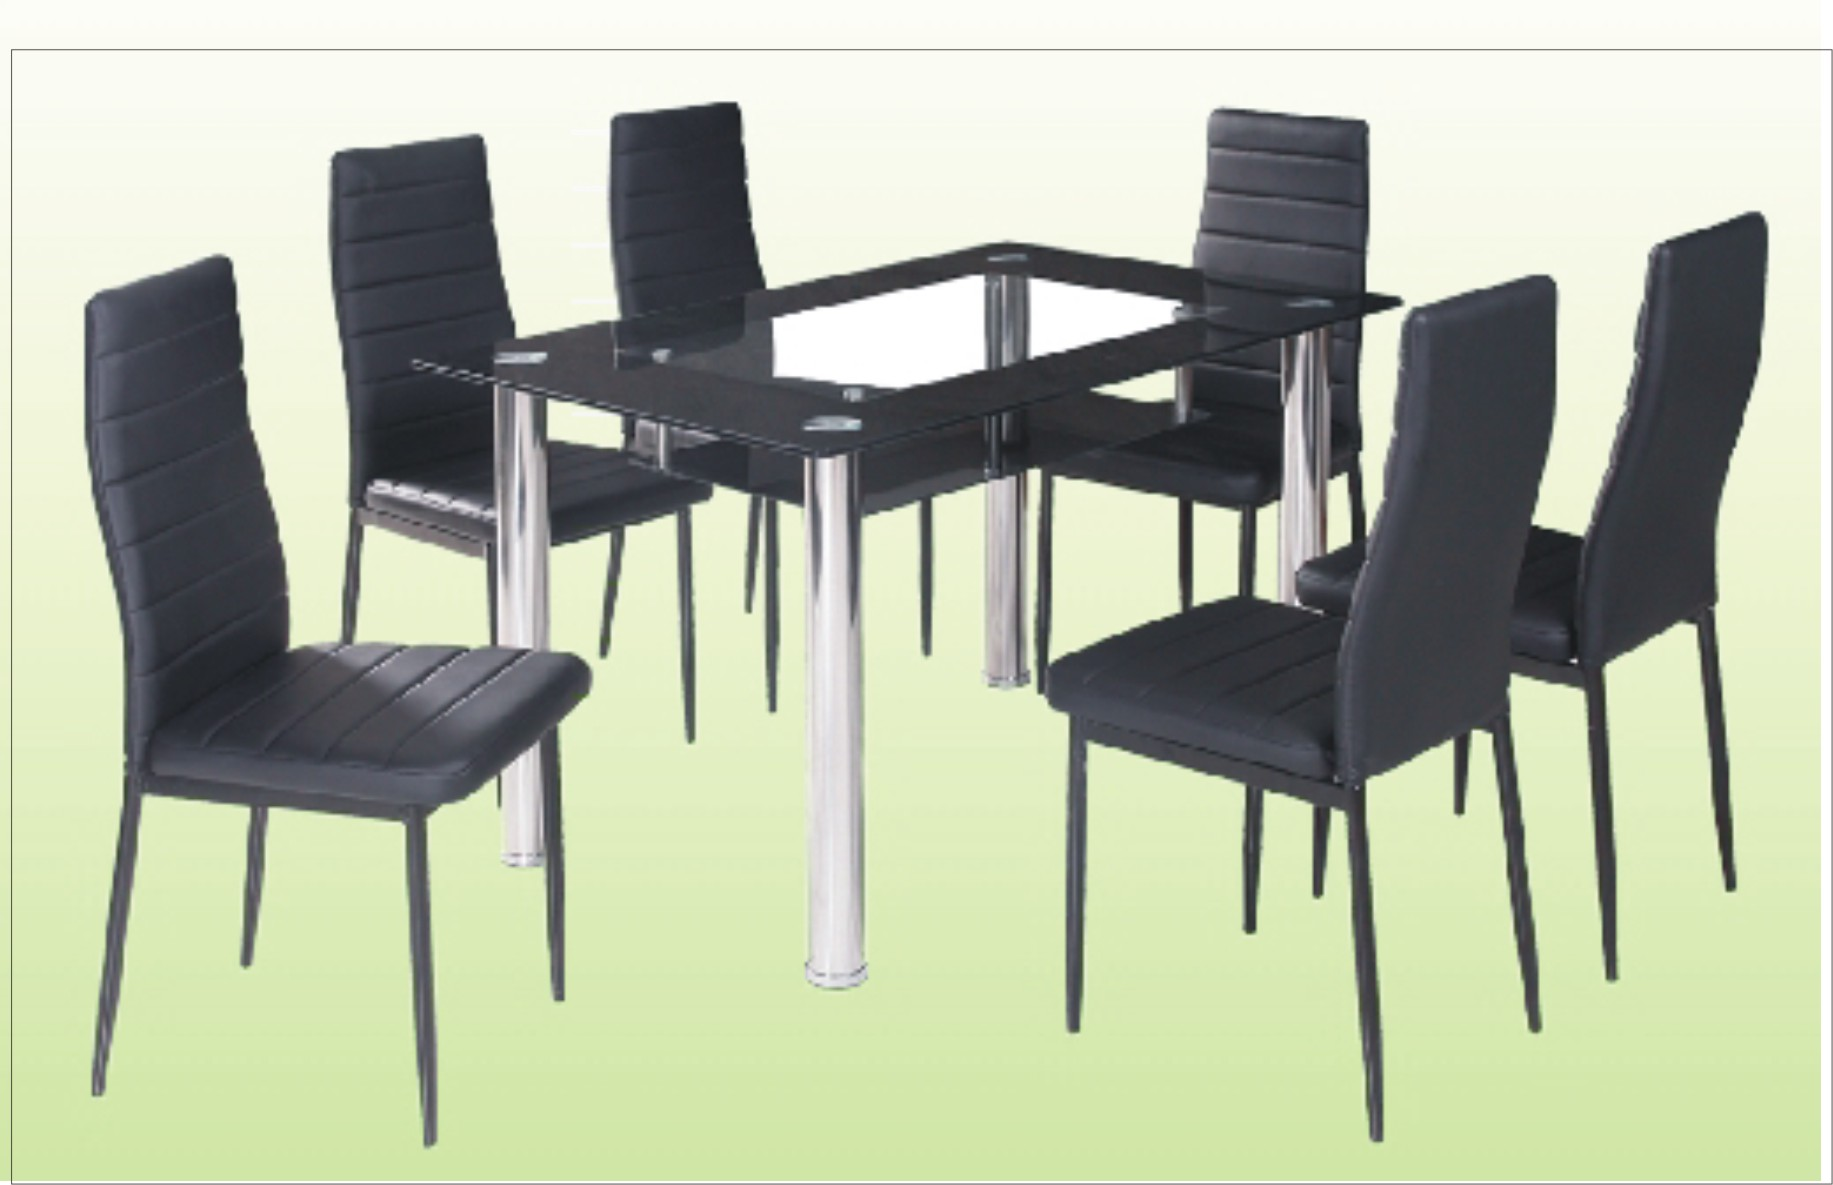 6 Chair Dining Table With Glass Top Cebu Appliance Center